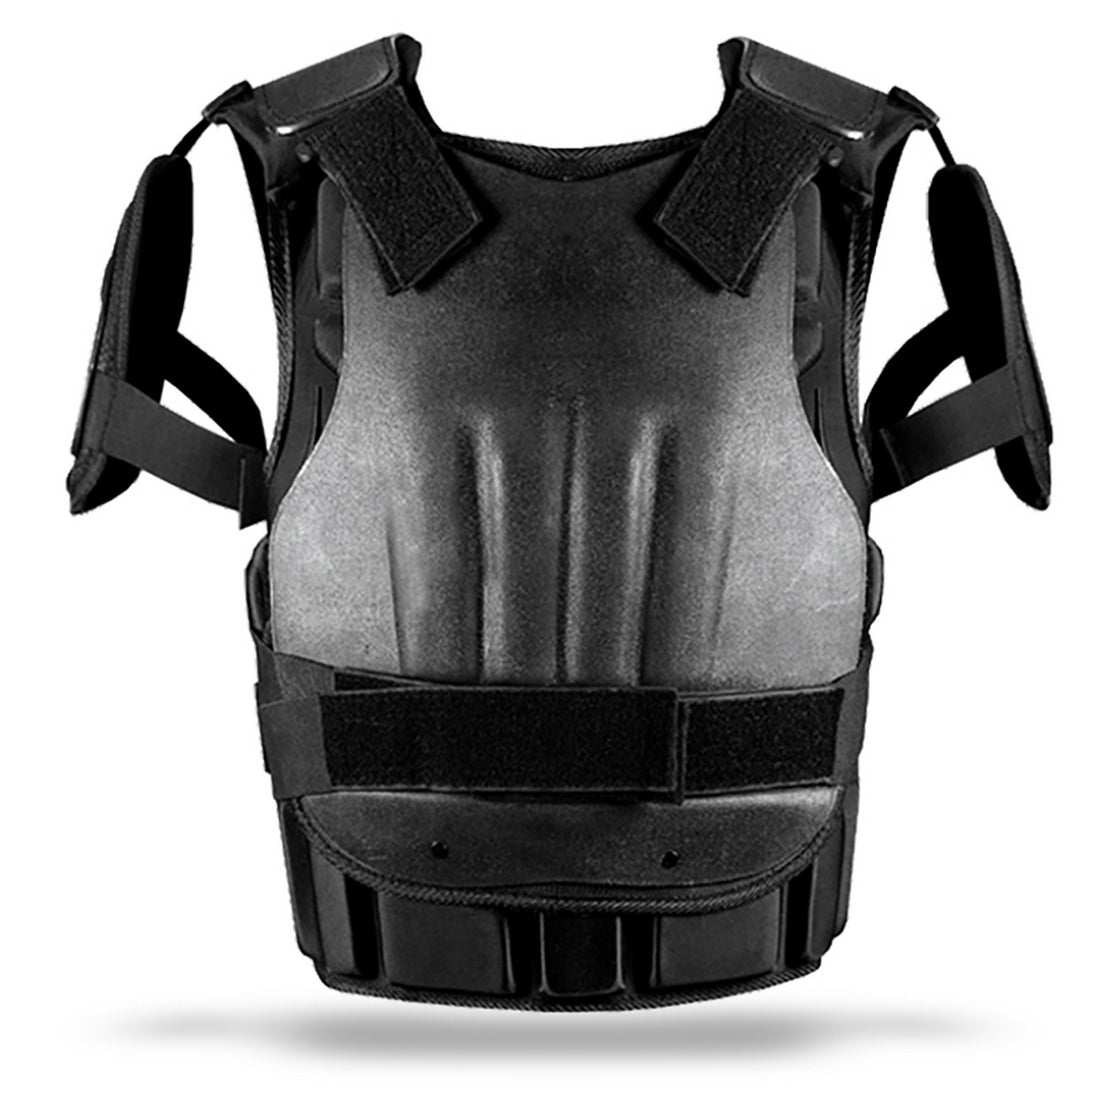 SecPro Riot Upper Body & Shoulder Protector